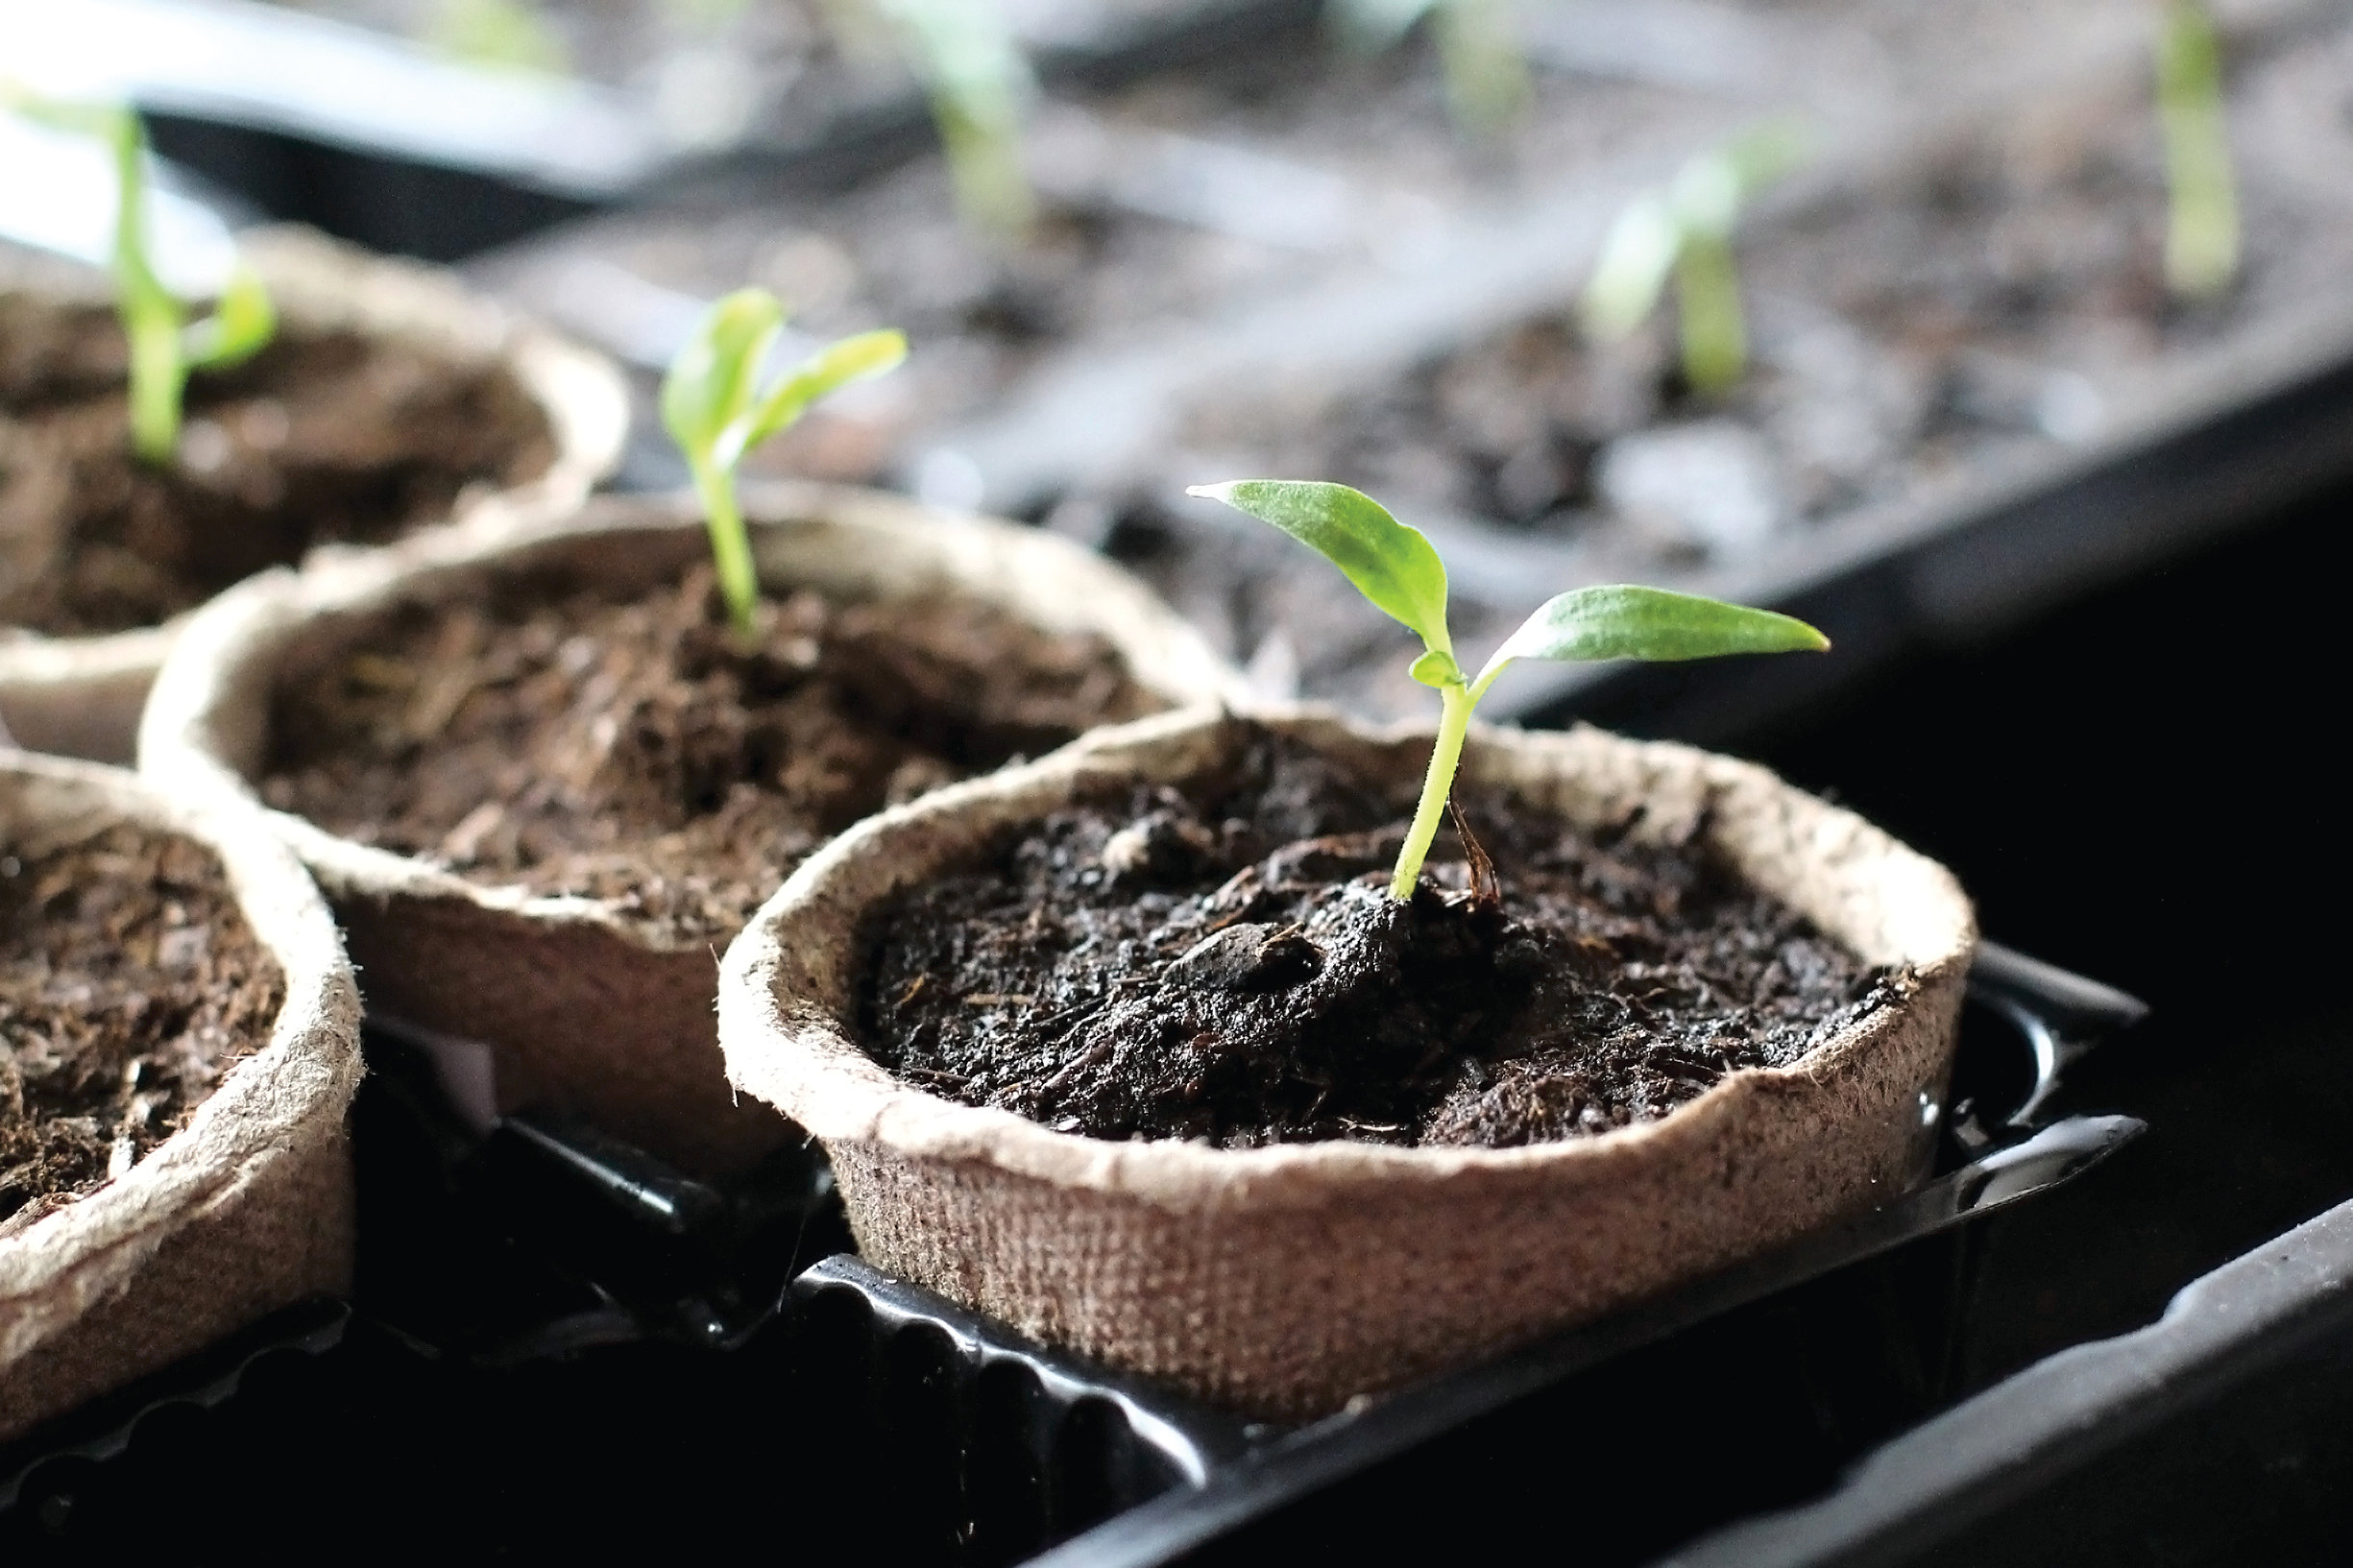 seedlings in starter pots